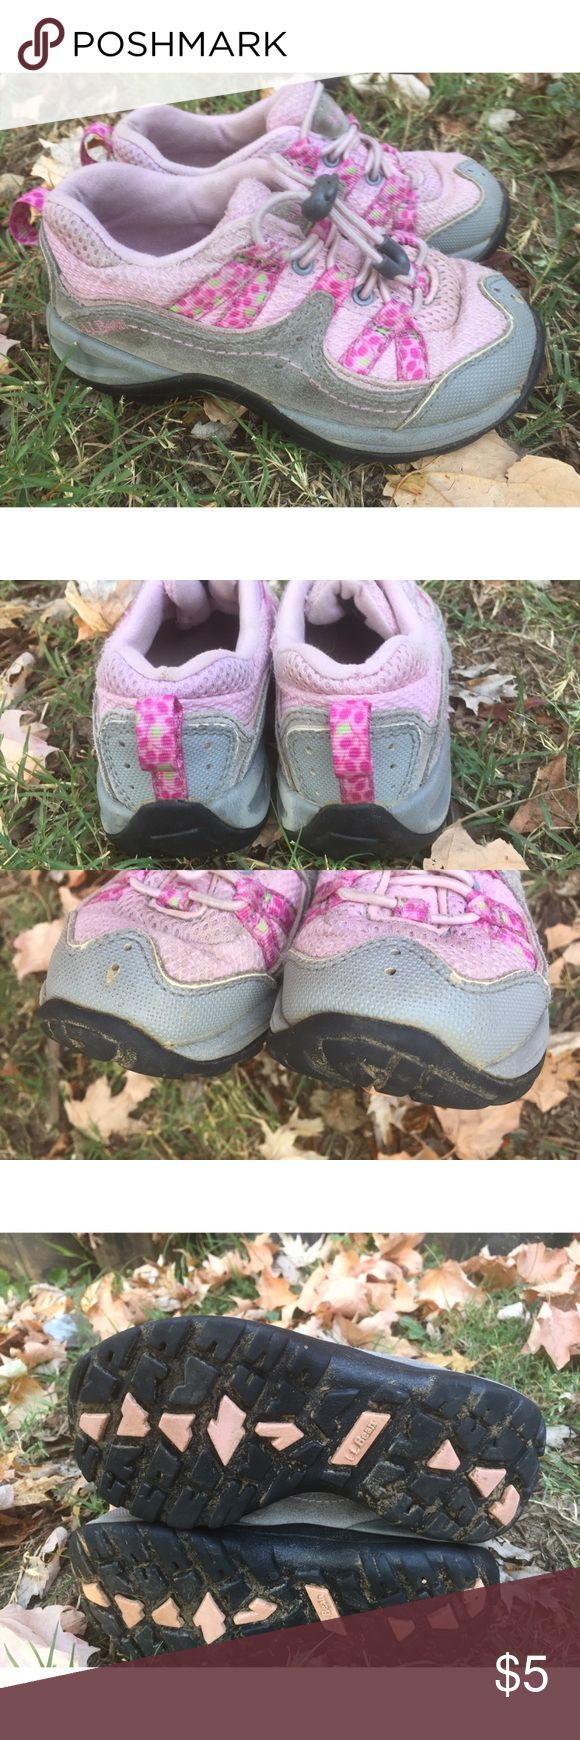 LL Bean Girls Shoes 11 Pair of LL Bean shoes, 11. Shoes show wear and dirt on soles. Play condition with lots of life left. Smoke free home. Thanks! LL Bean Shoes Sneakers